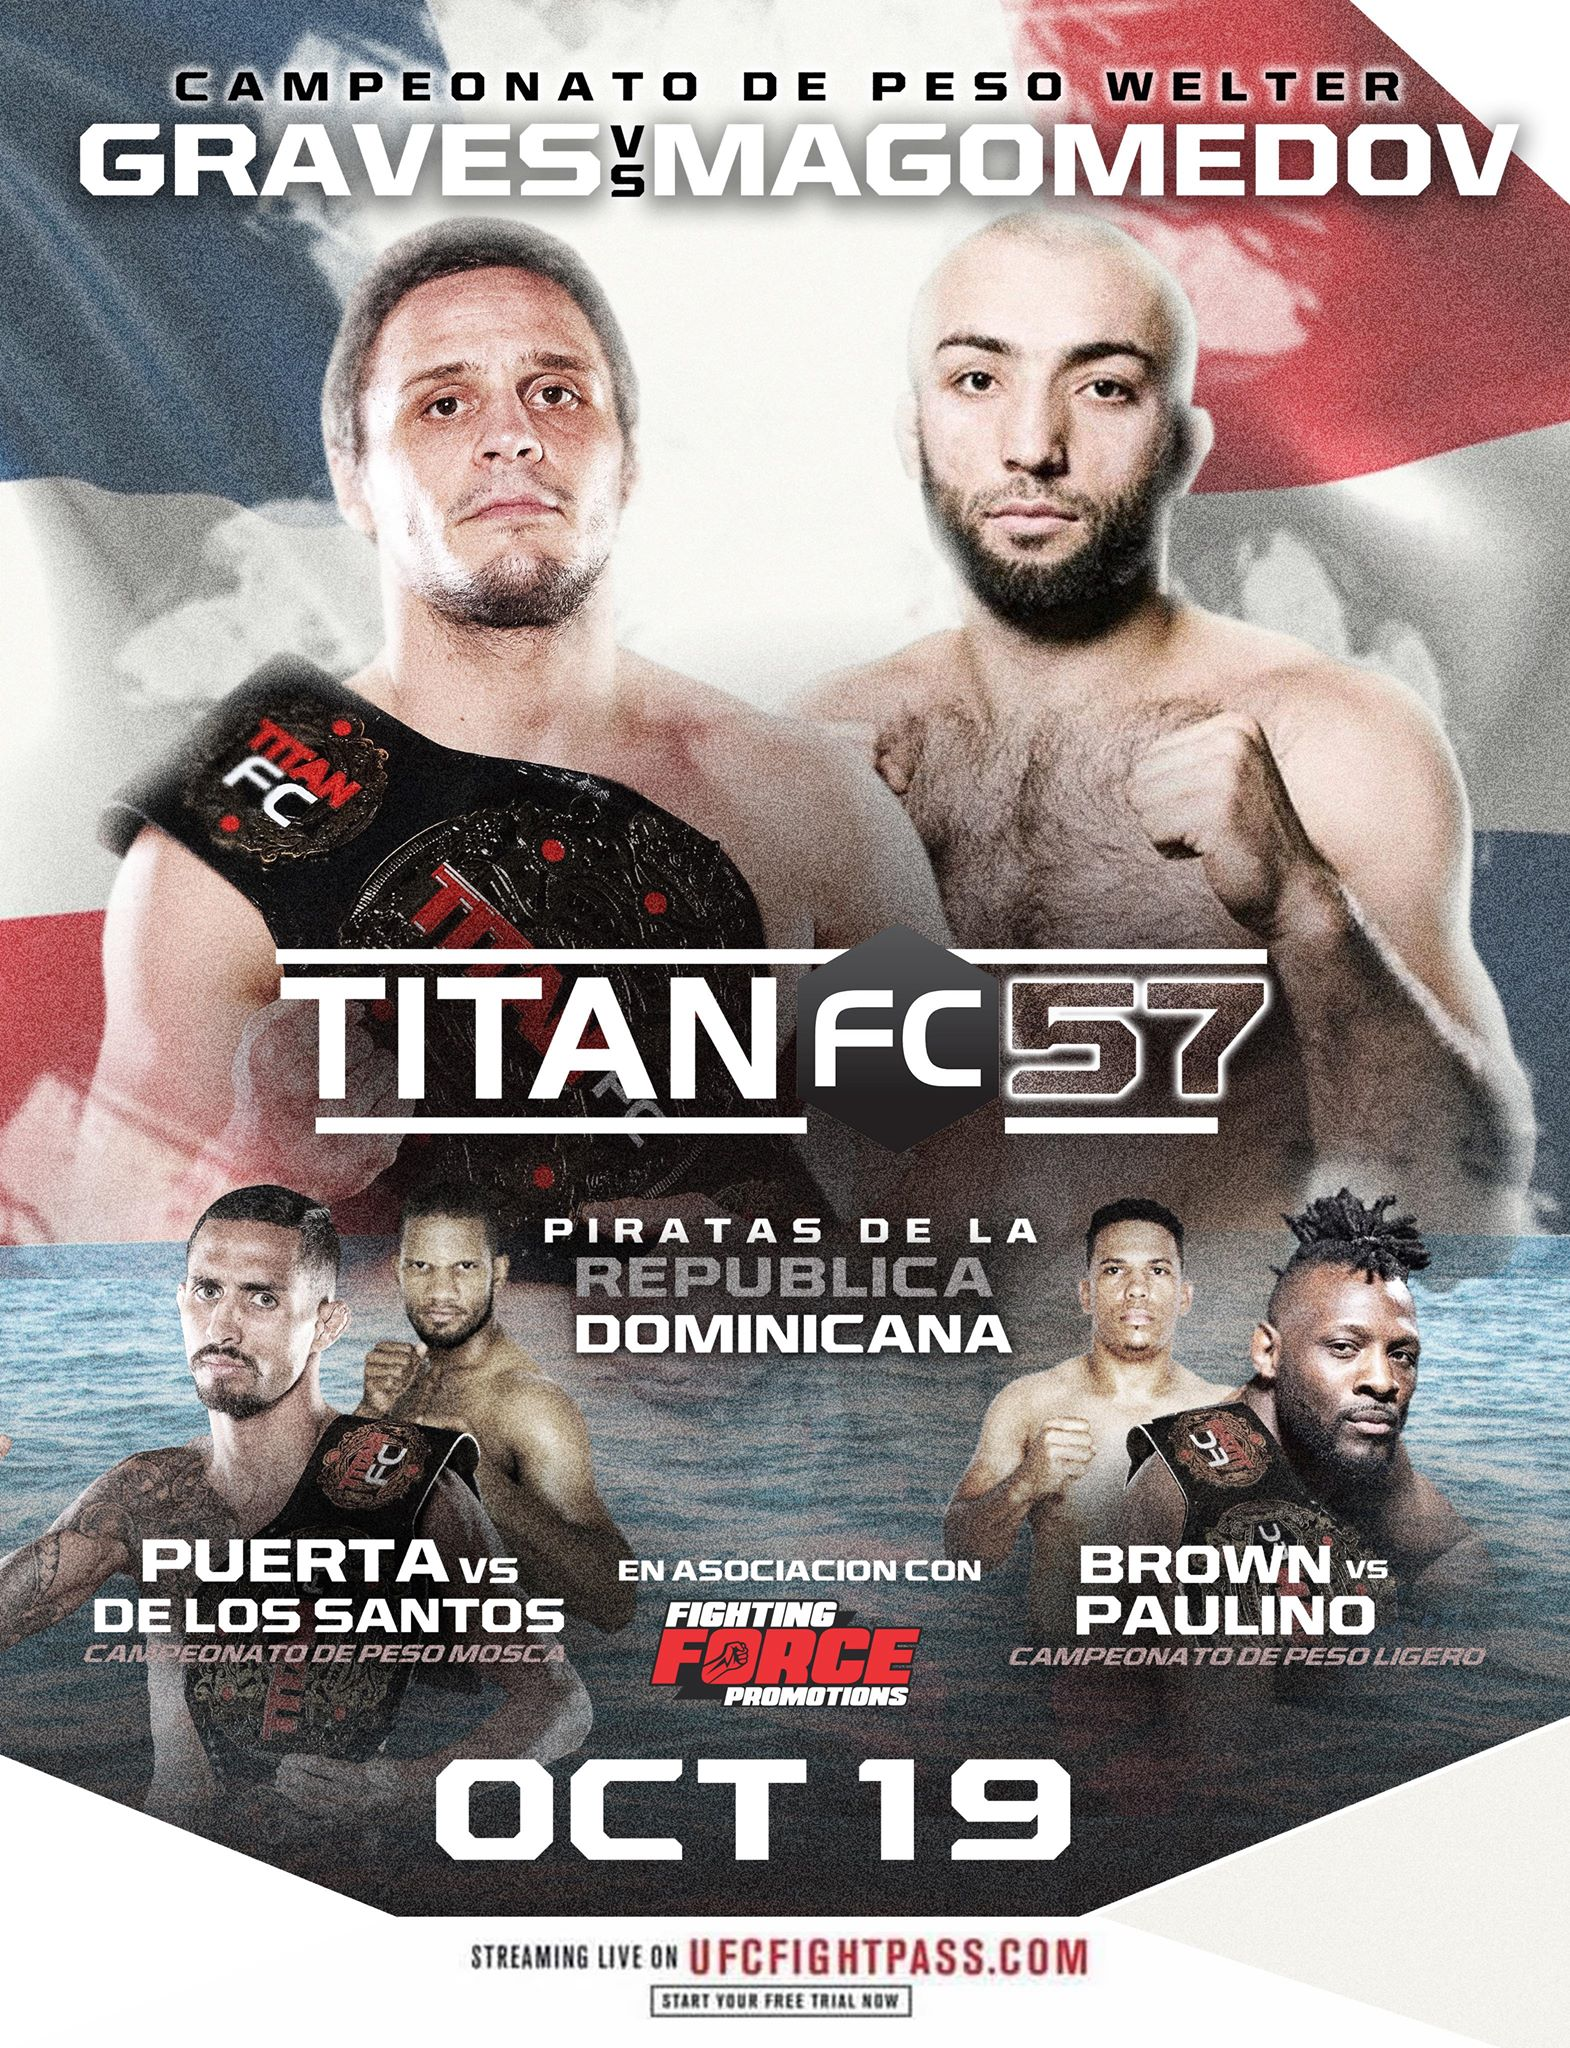 Uros Jurisic stripped of Titan FC welterweight title, Michael Graves receives new opponent in Titan FC 57 headliner -